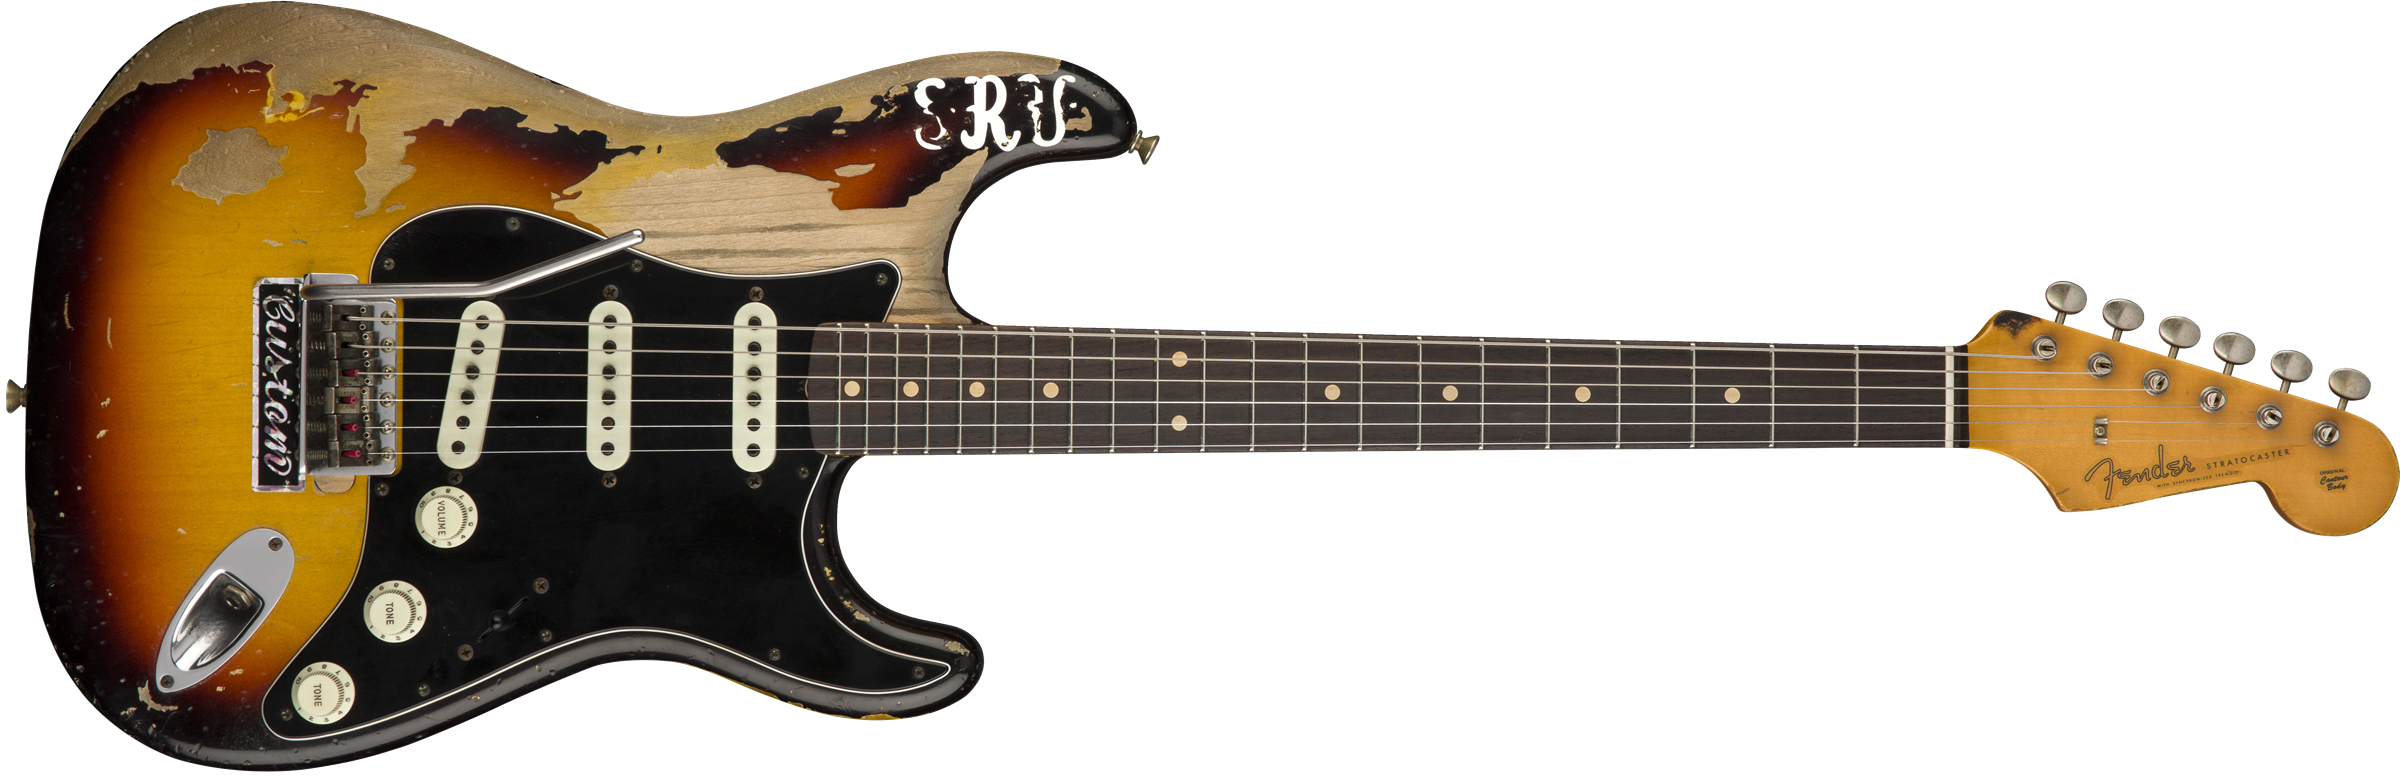 LIMITED EDITION STEVIE RAY VAUGHAN STRATR